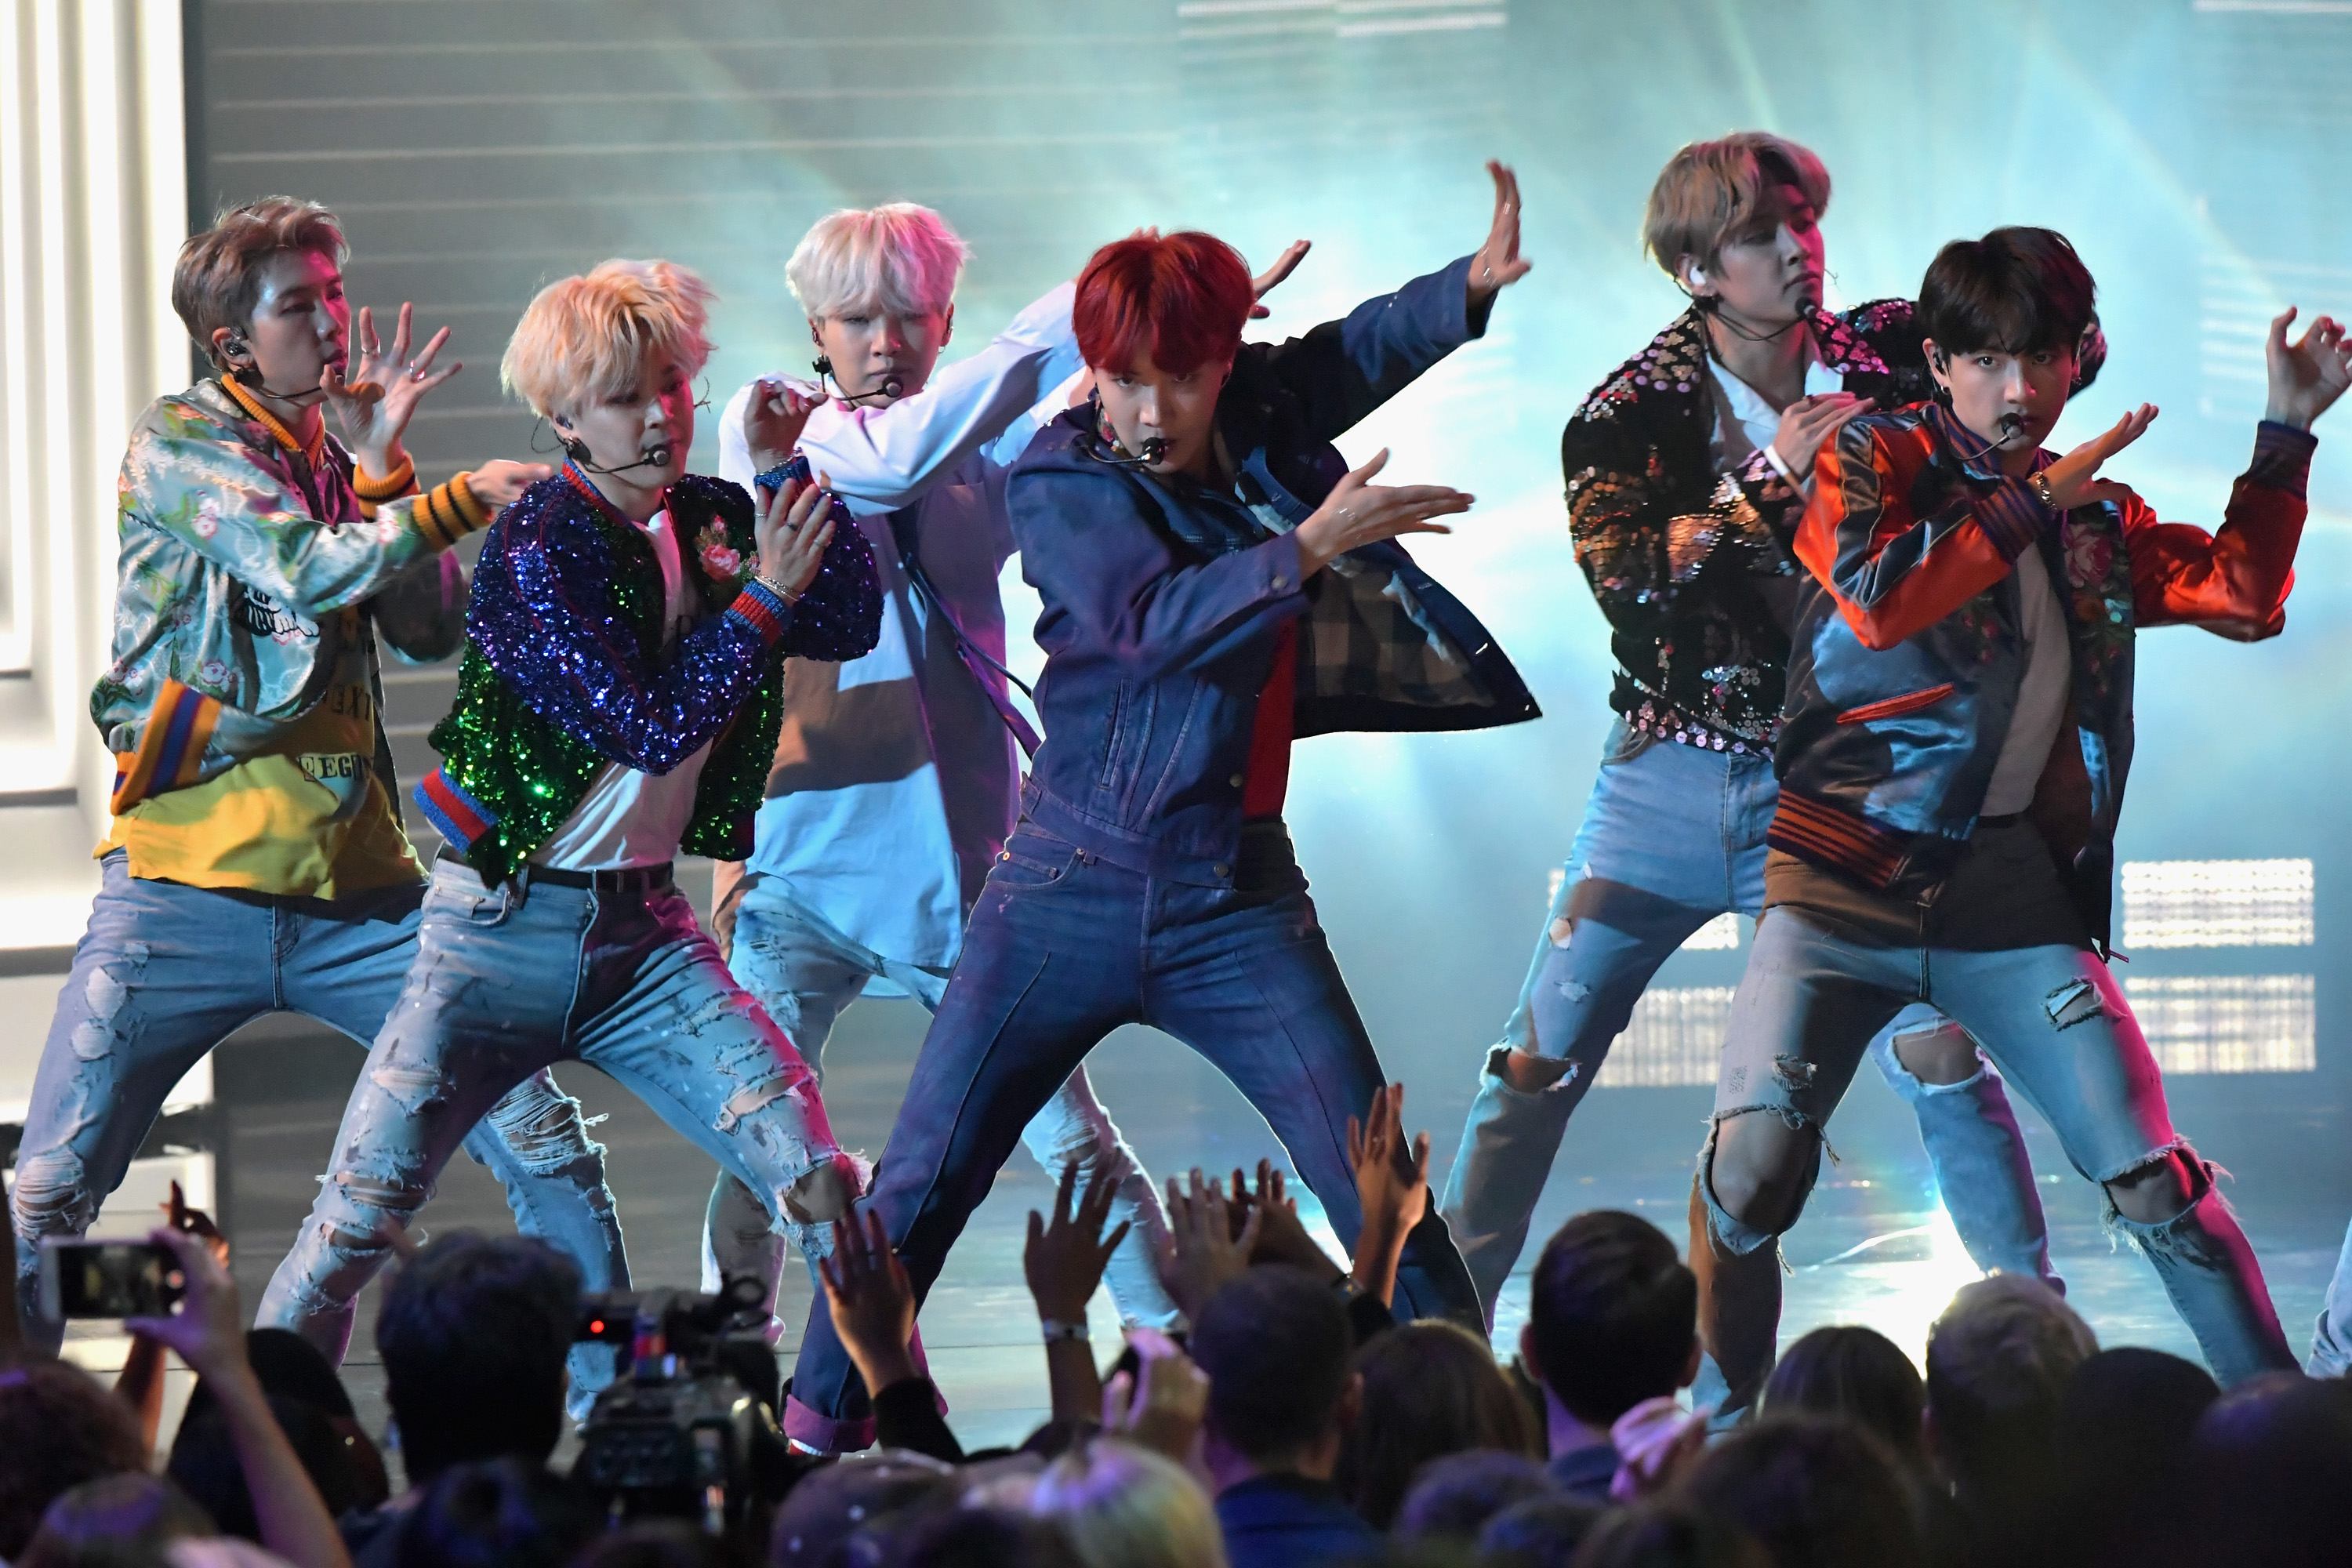 The BTS concert film Burn the Stage digs deep into a phenomenon